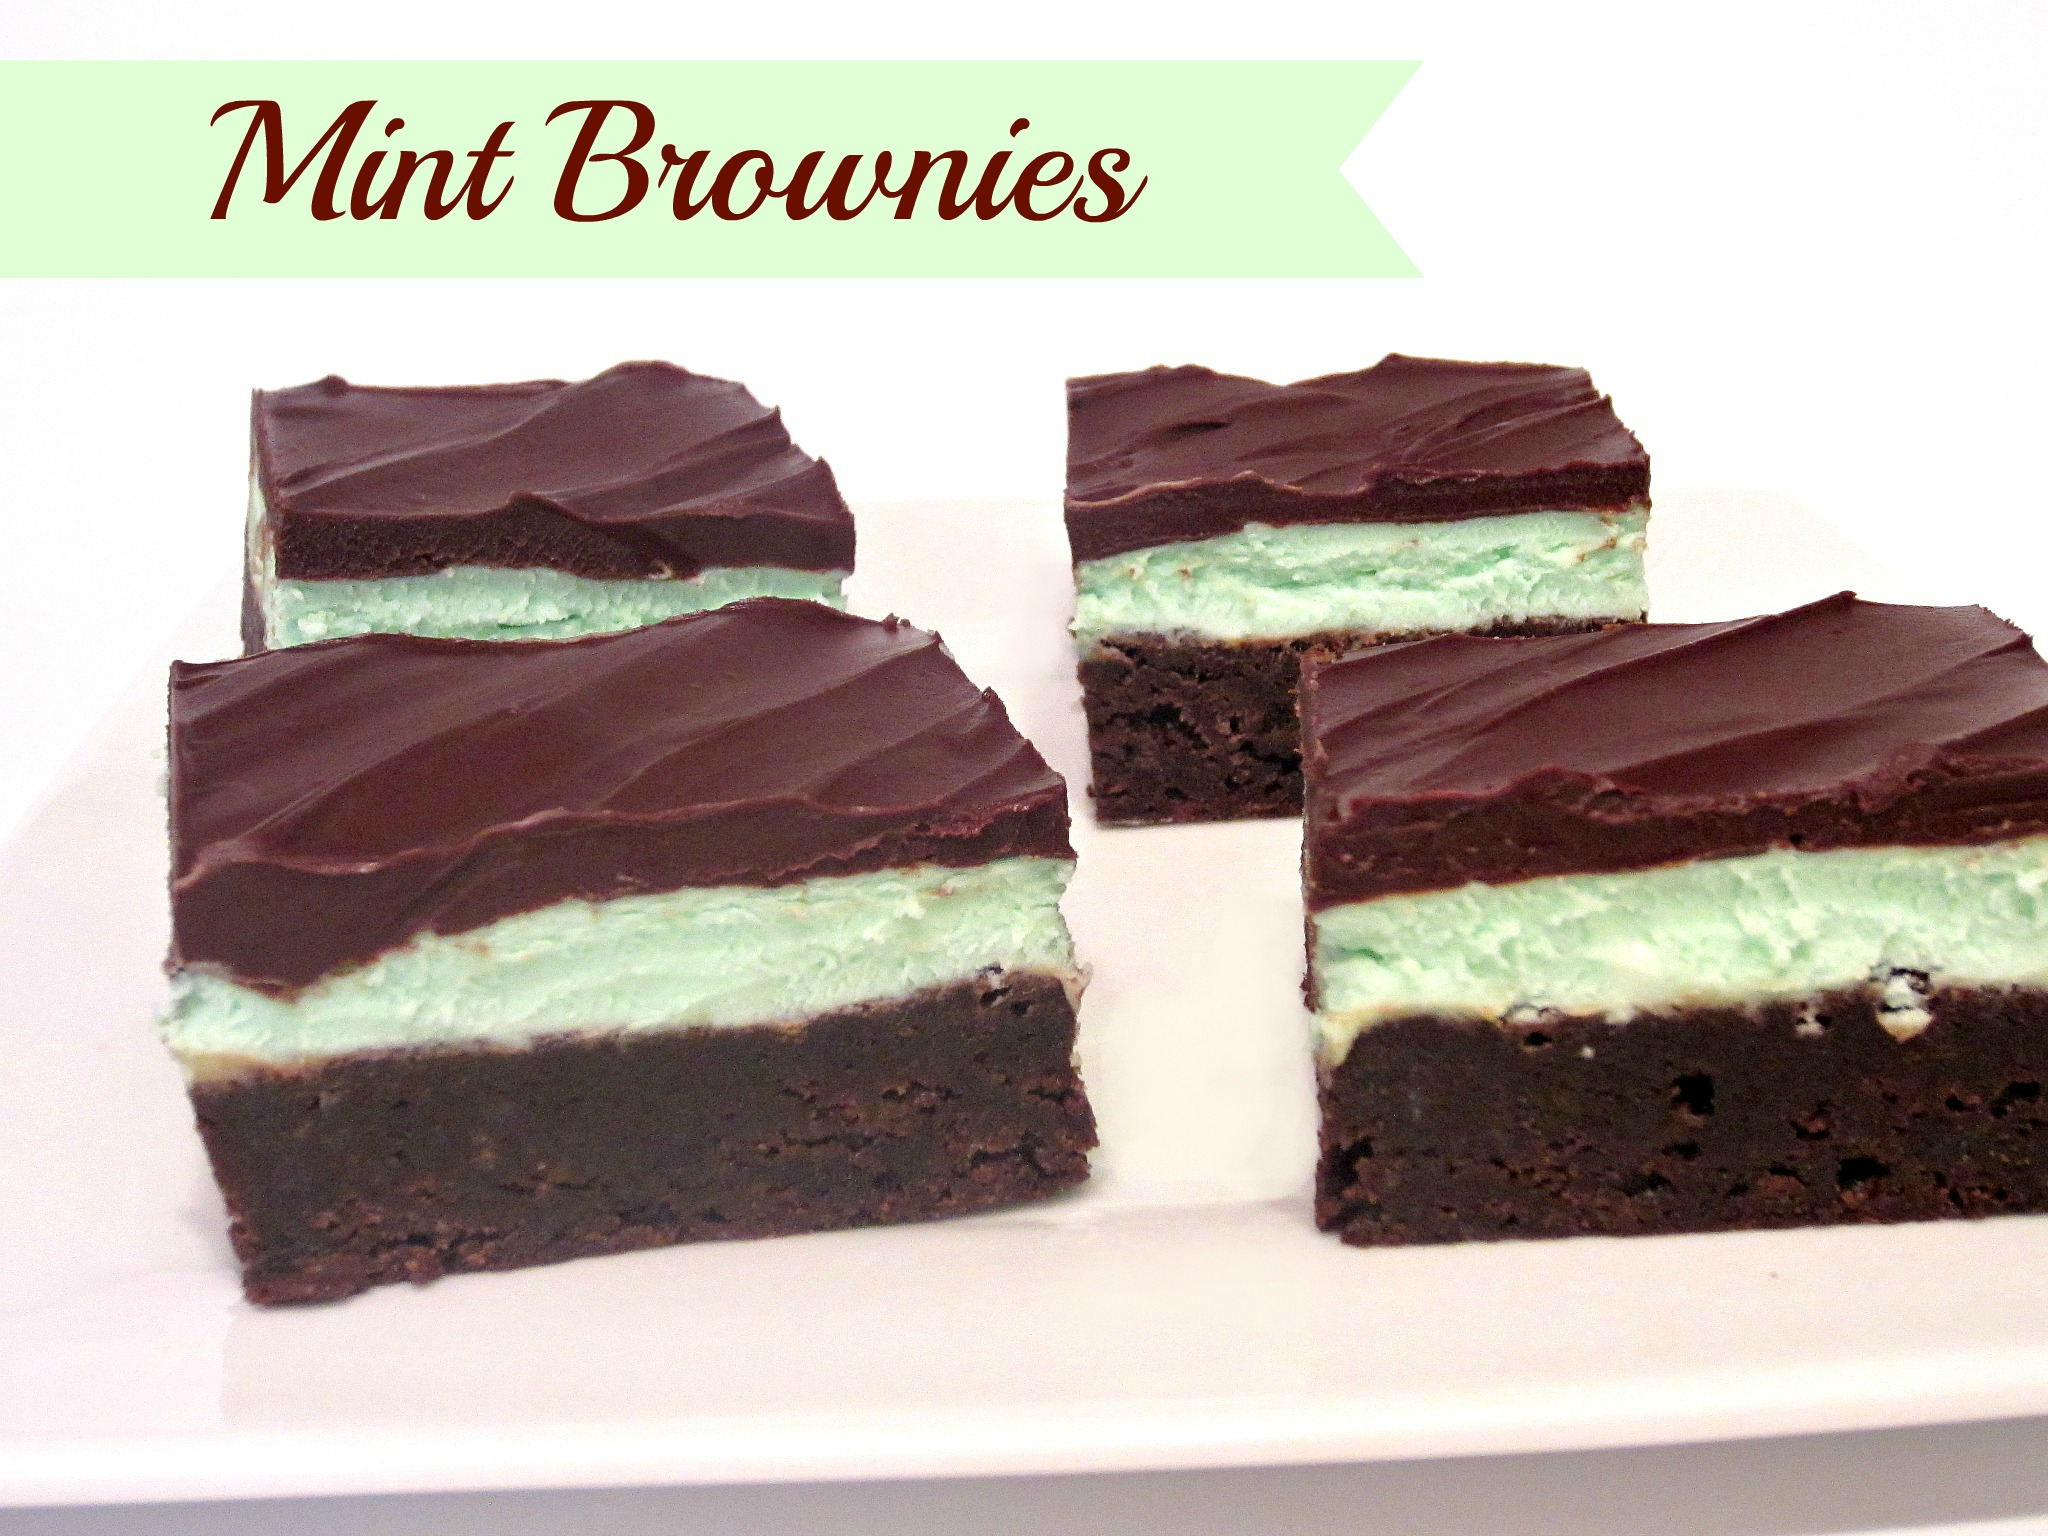 Mint Brownies (The Best!) - Love to be in the Kitchen